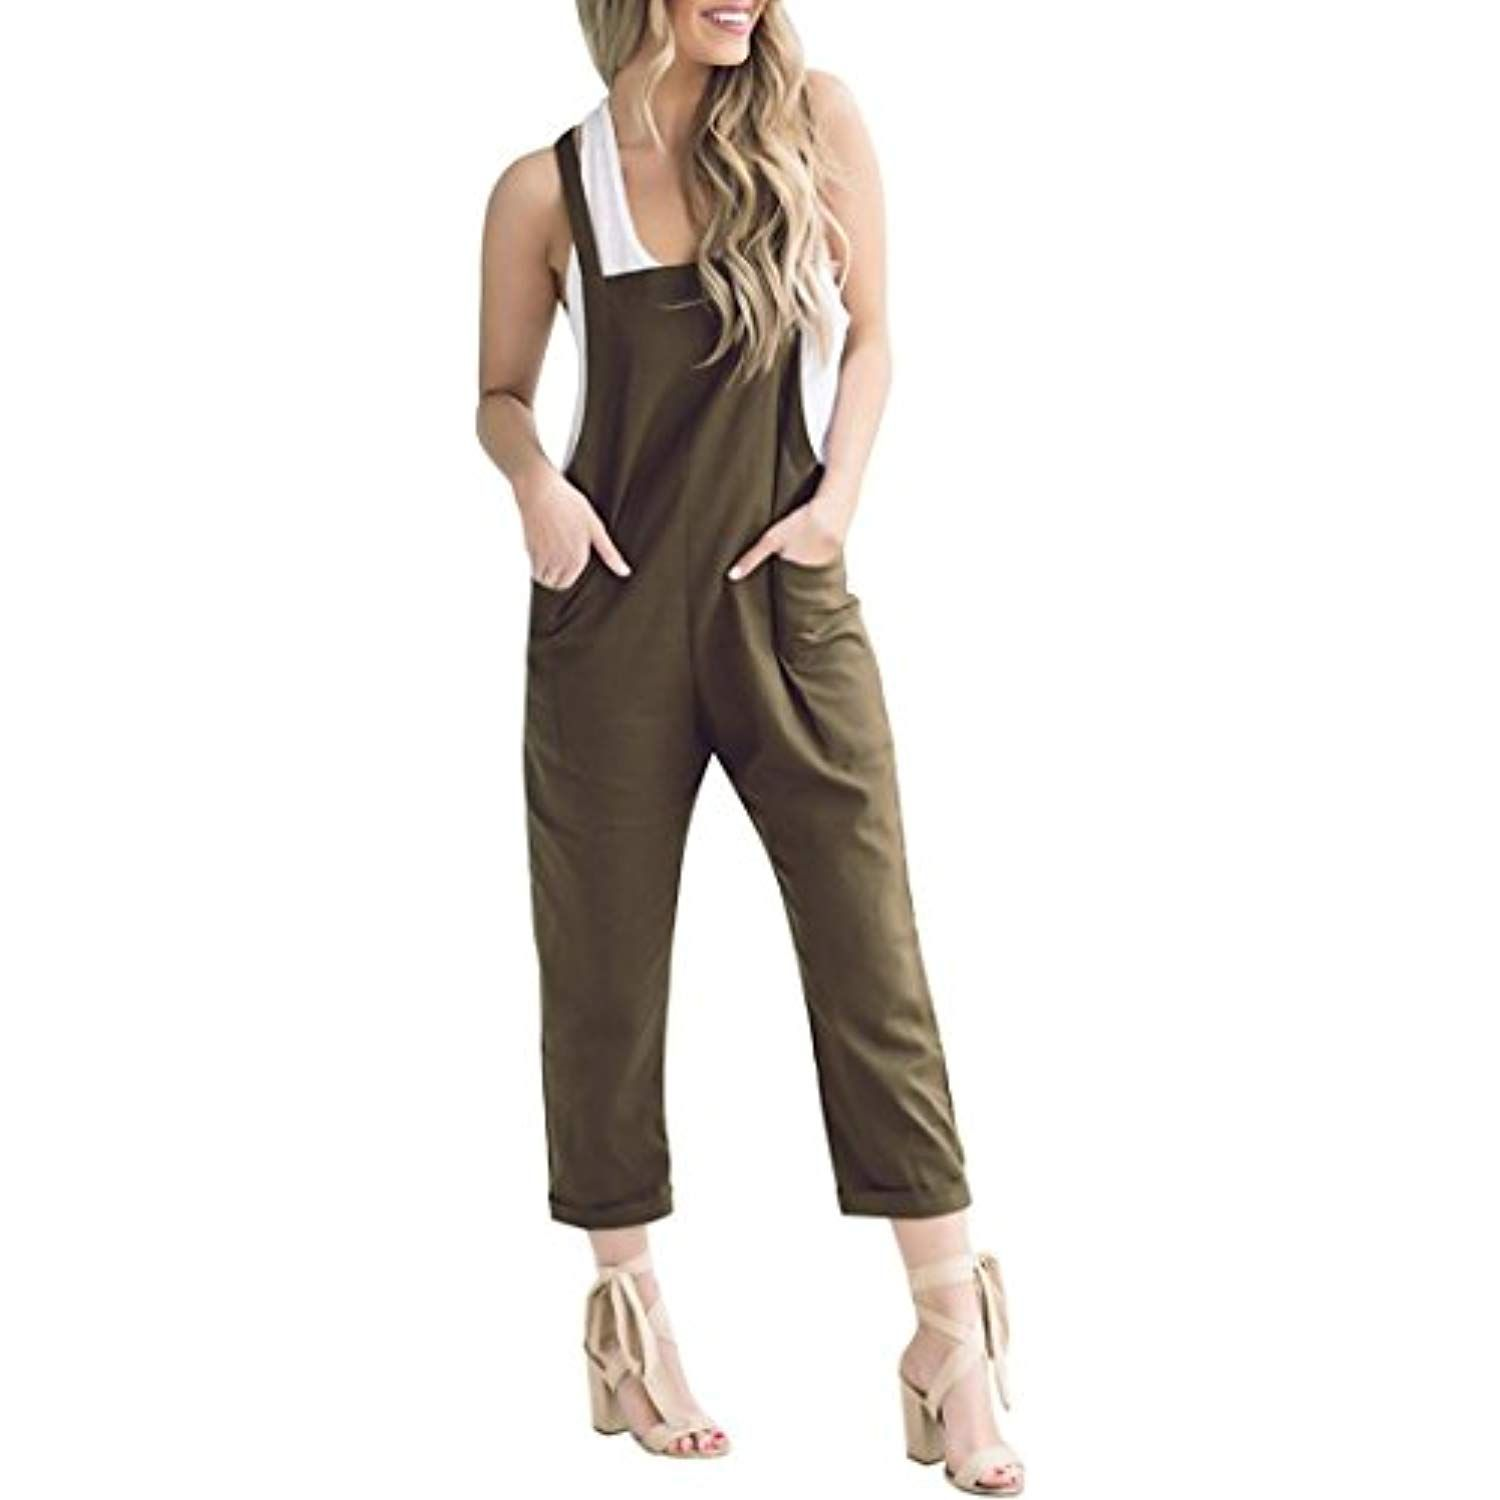 0d3d204a7b2 Women Loose Casual Baggy Jumpsuit Trousers Overall Pants Khakis Wide Leg  Ankle Jeans one Piece Romper